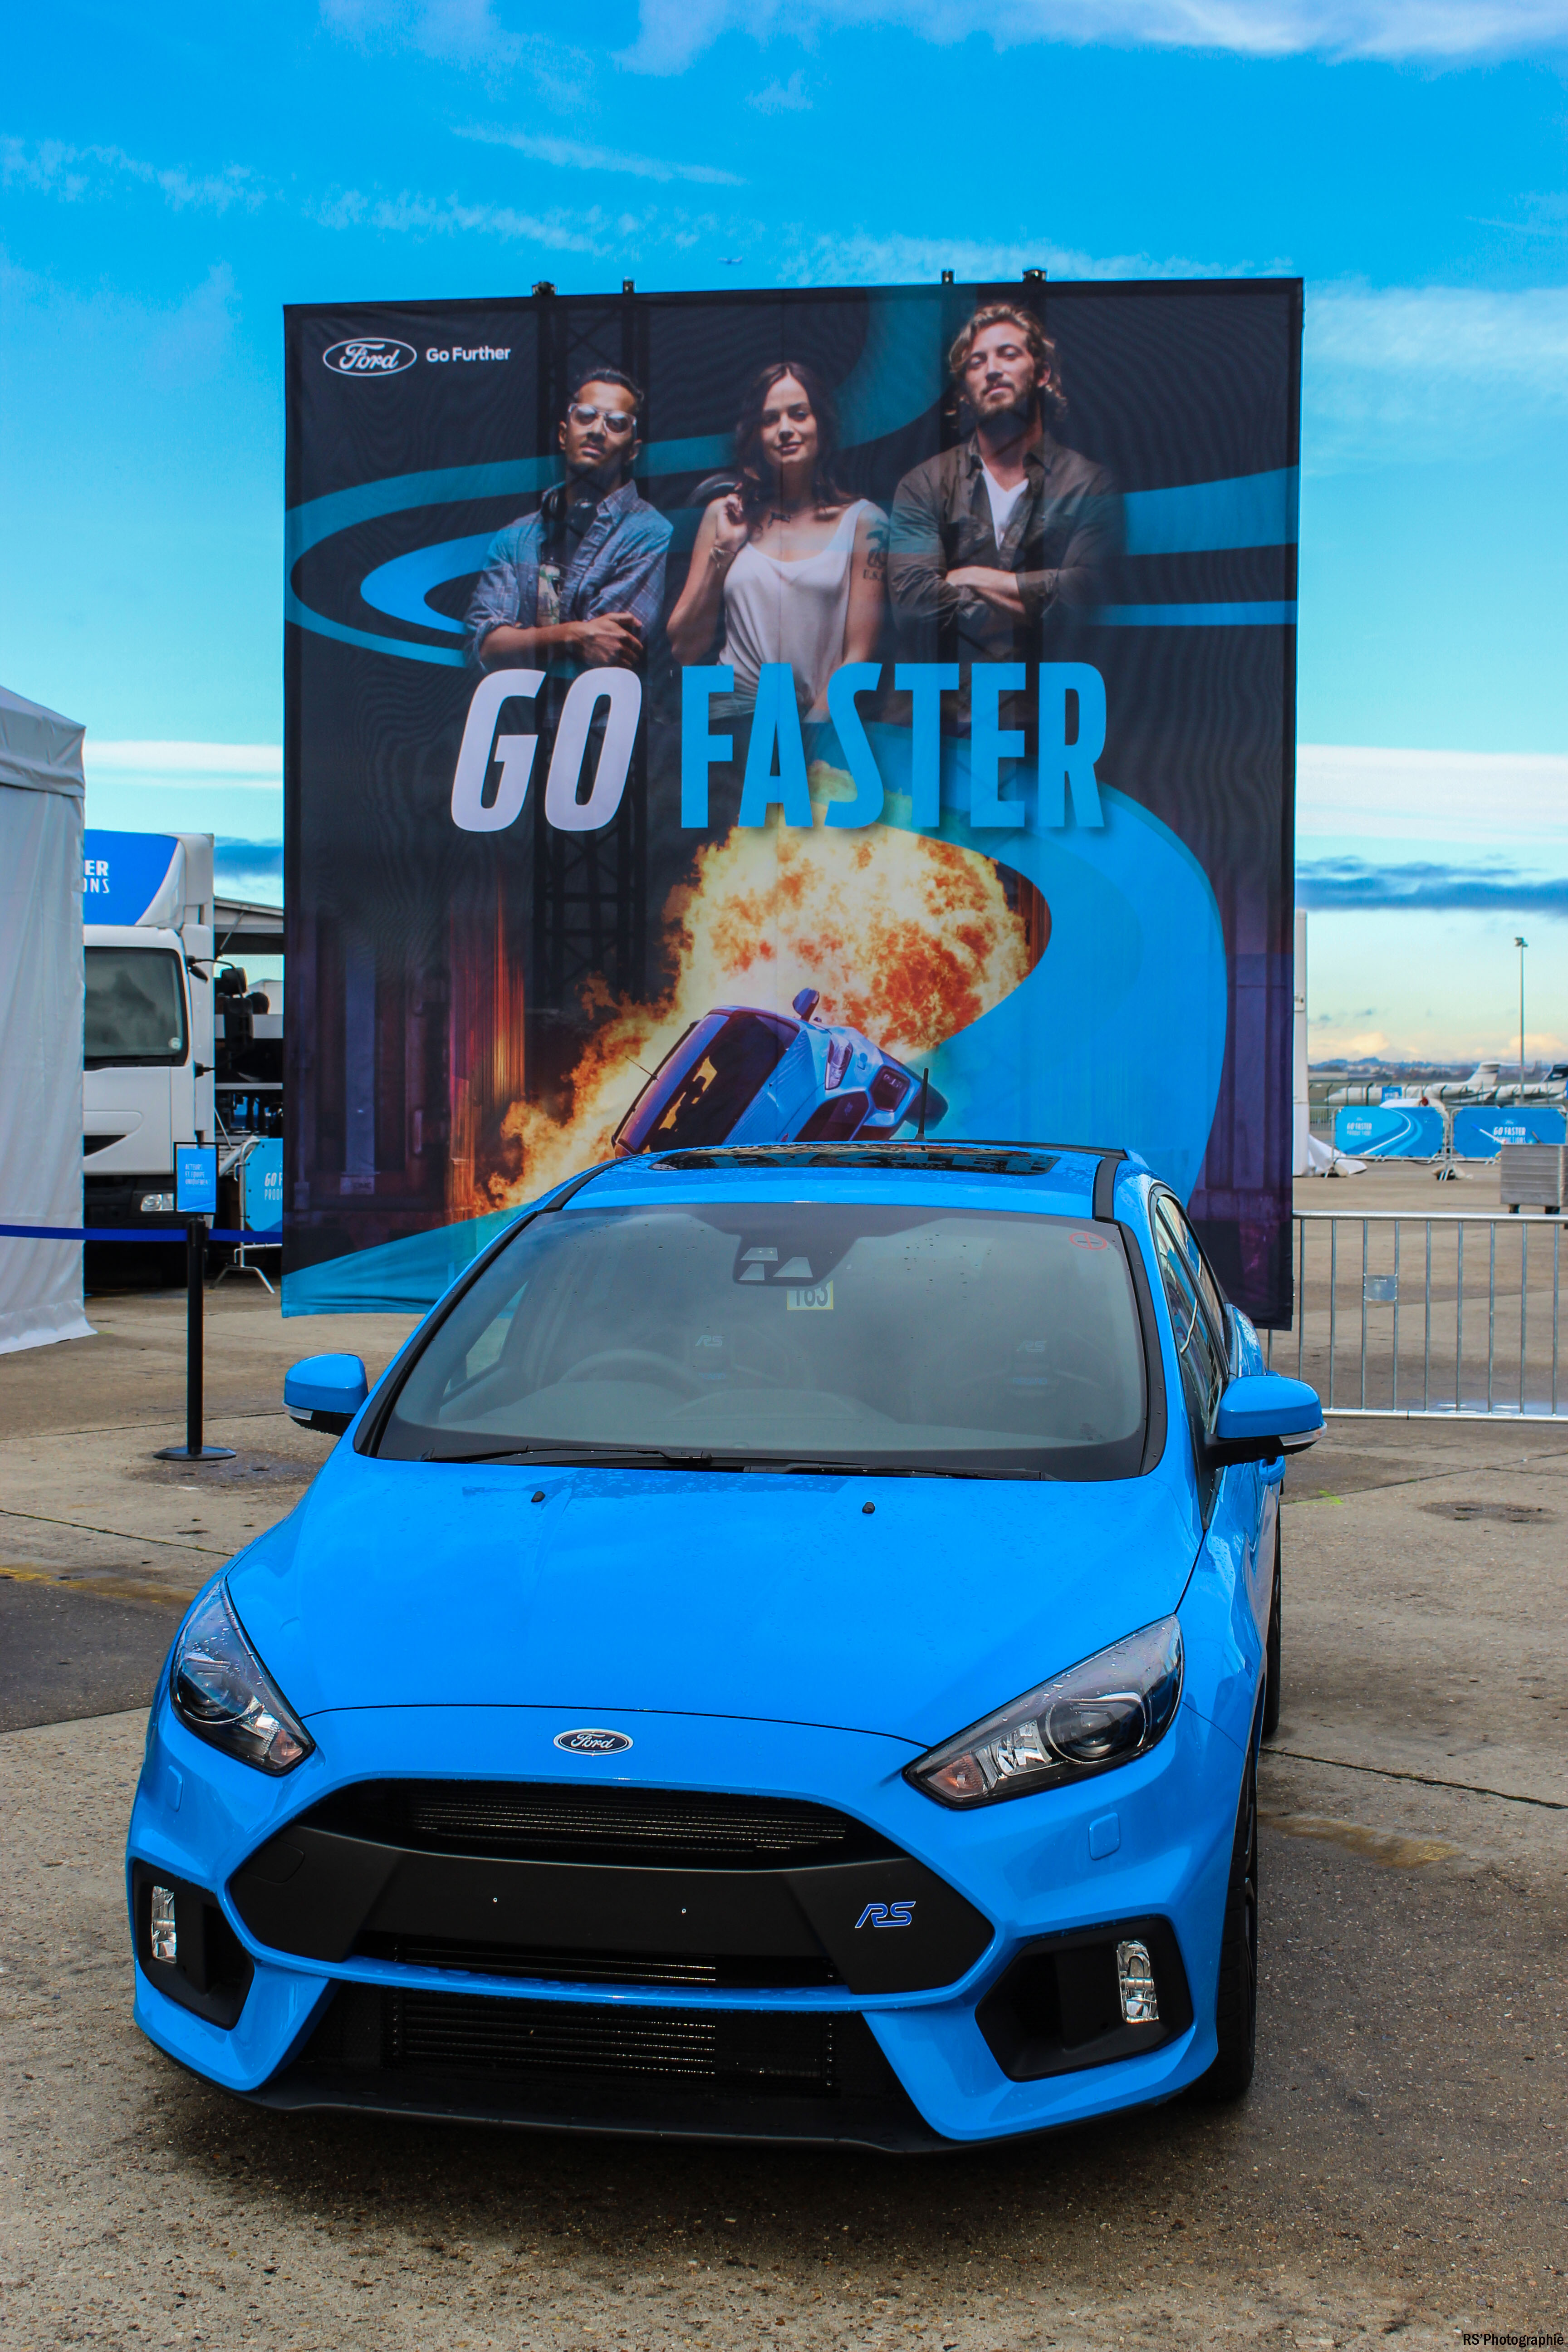 gofaster2-opération-go-faster-ford-focus-rs-avant-front-Arnaud Demasier-RSPhotographie